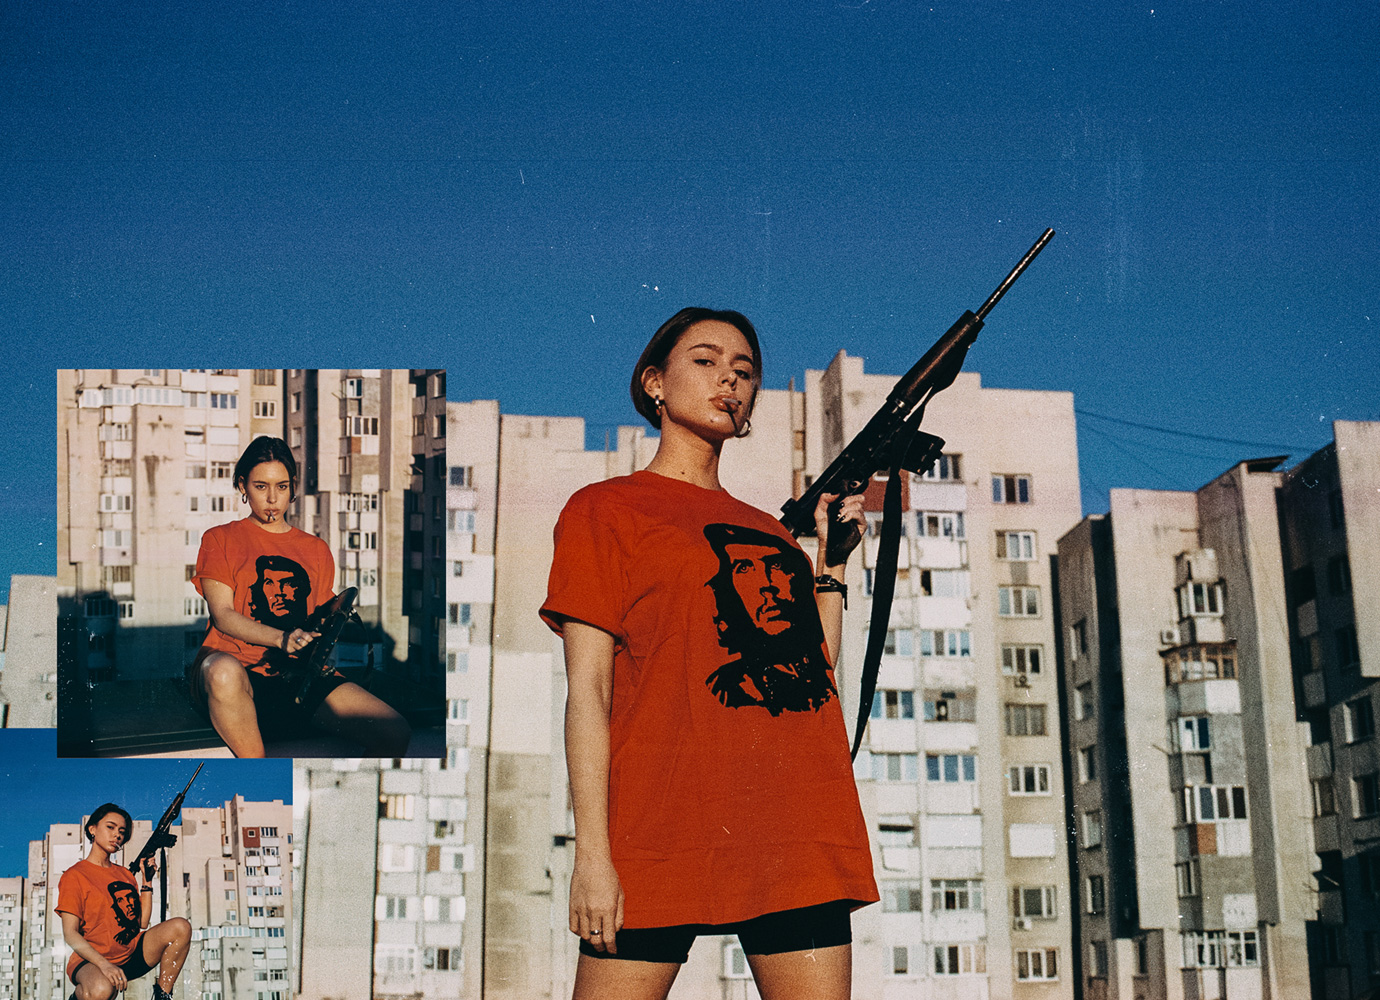 MTV glamour and Soviet stereotypes: a Moldovan photographer comes to grips with his country